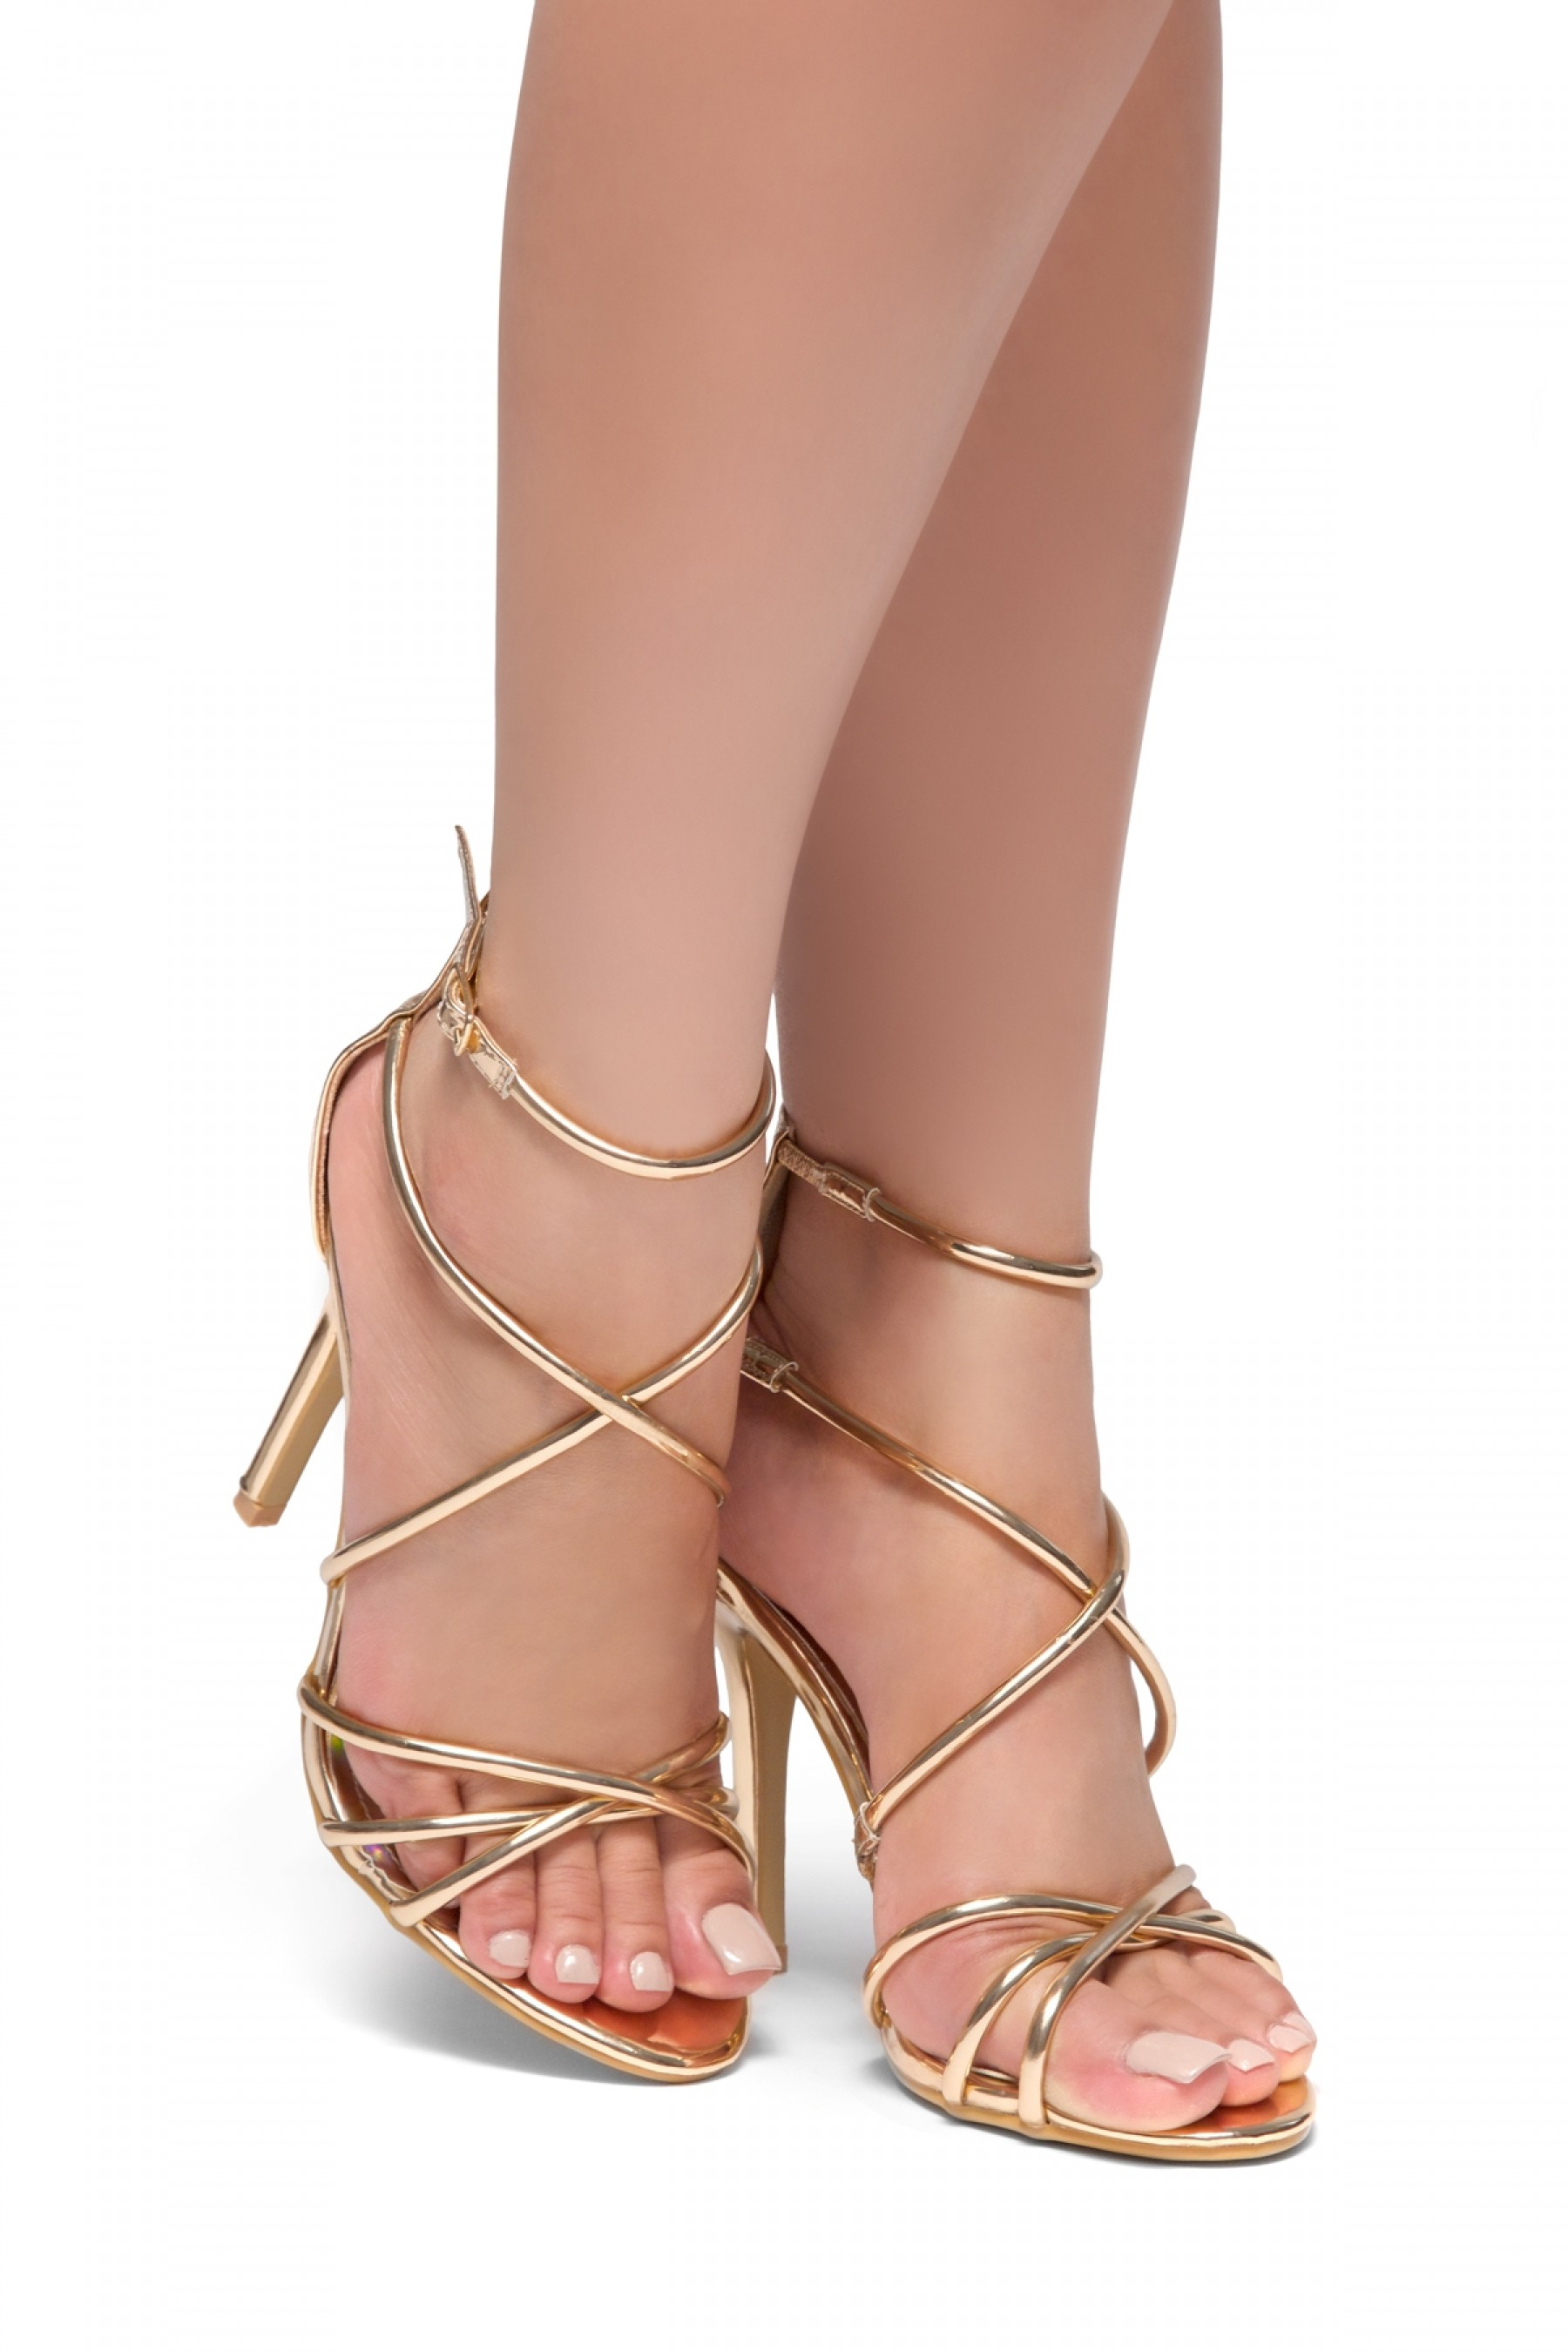 gold com ankle stretch spylovebuy anklet high shoes from boots livia image heel stiletto zip